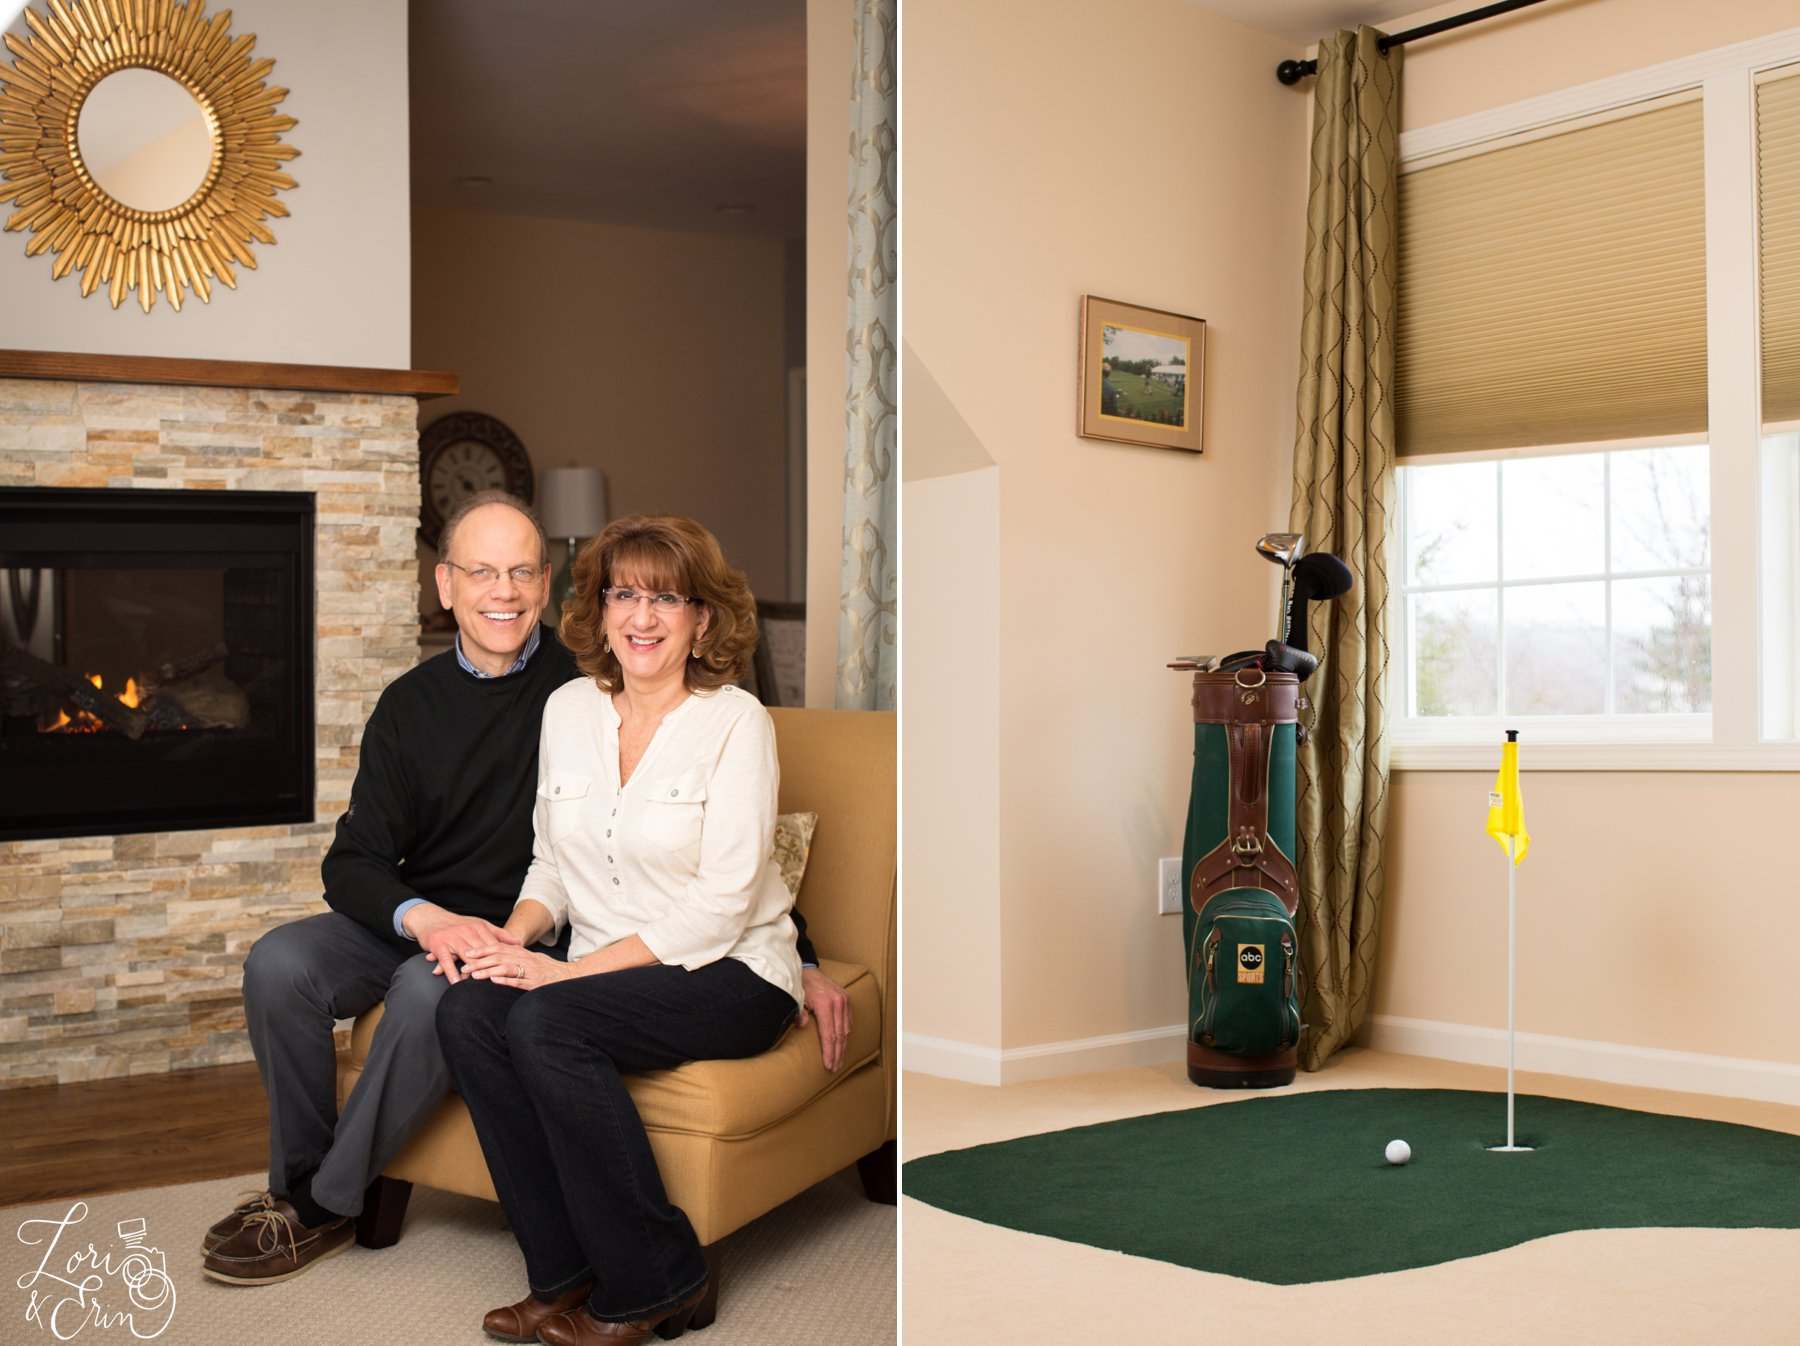 All of the neighbors seem to have golf in common, but this couple had a putting green in their bedroom!